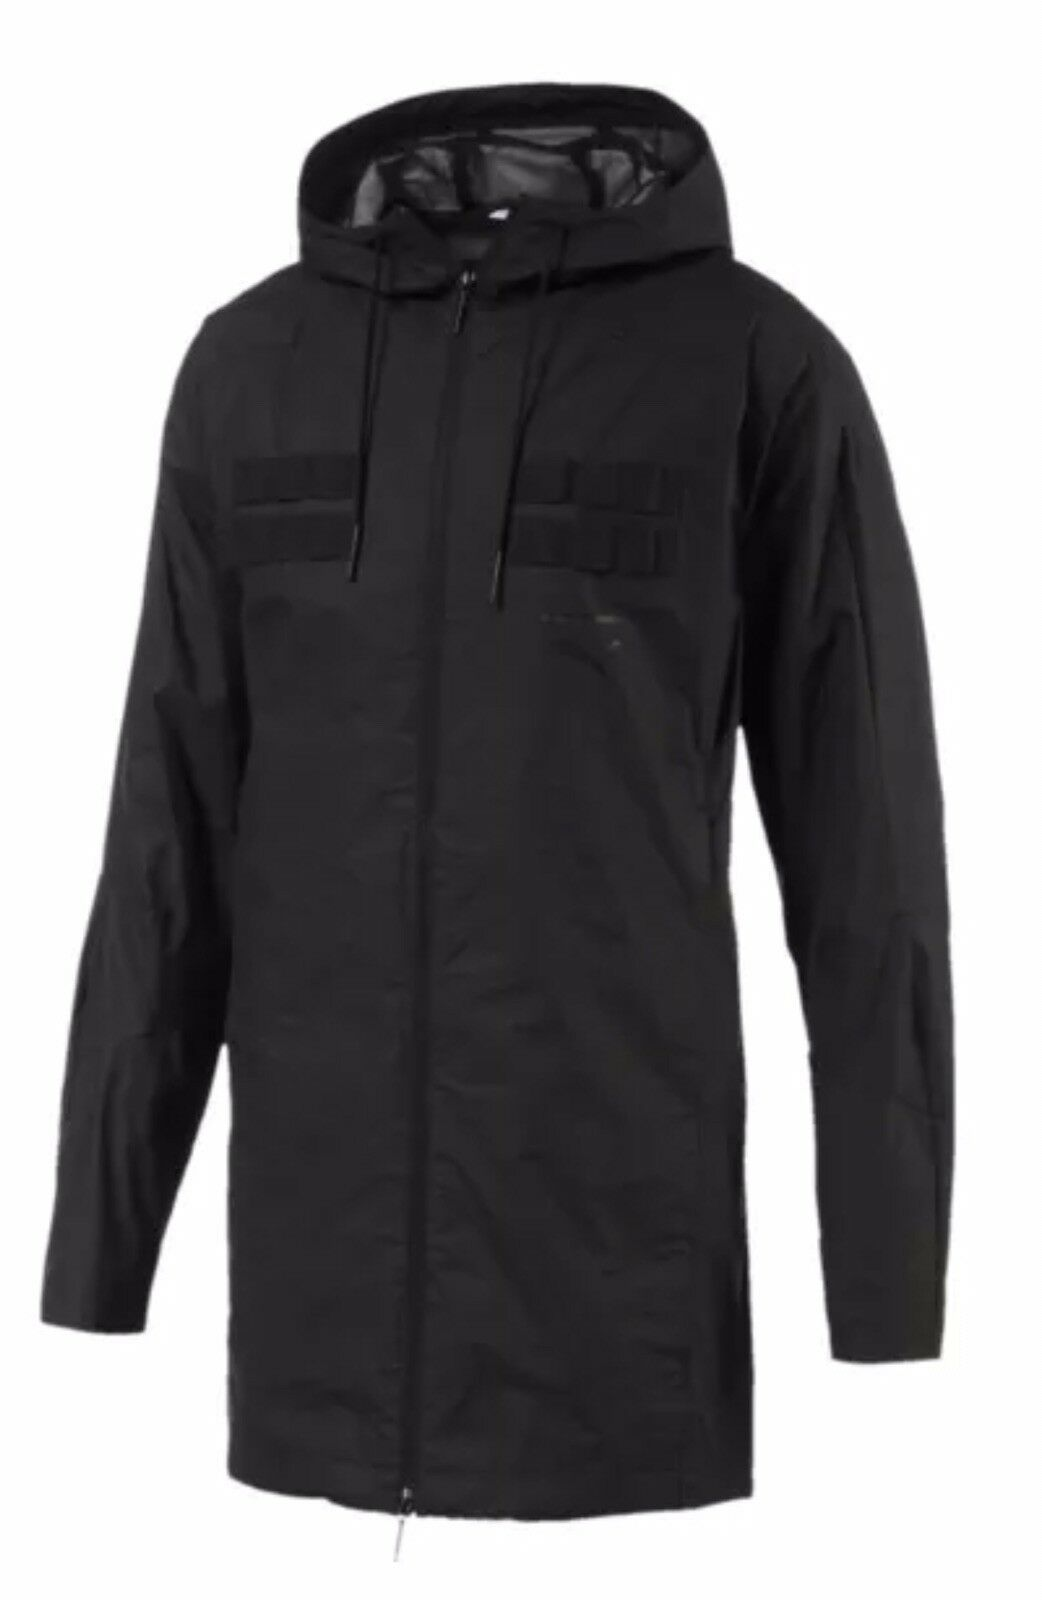 21c756a7d3 Puma Pace LAB Men's Hooded Jacket Coat New 575033-01 Size M and L